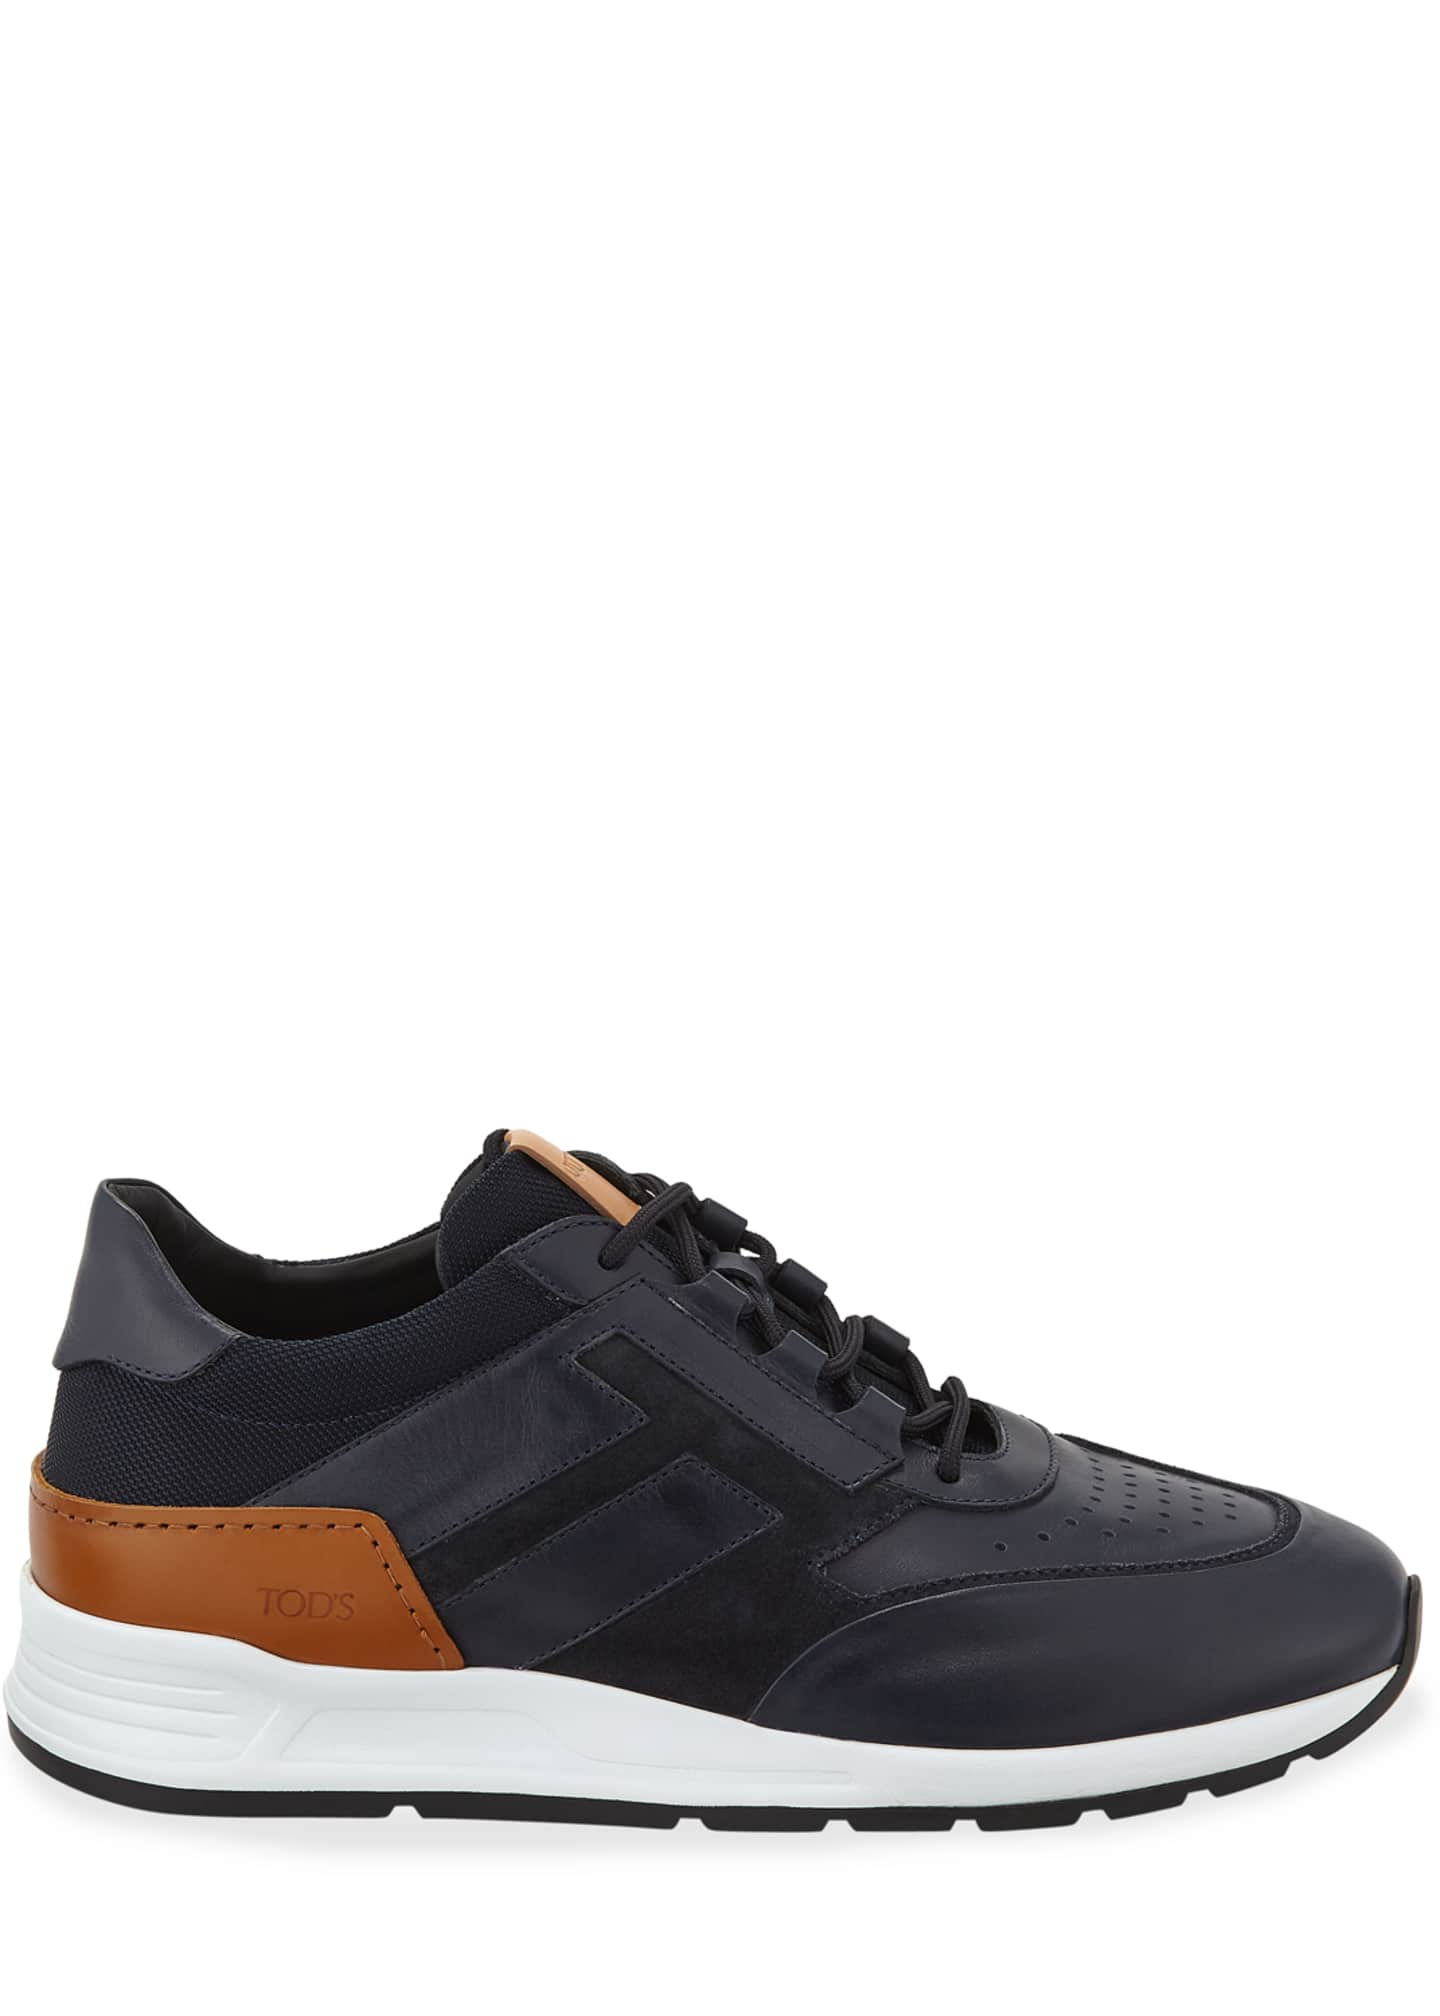 Image 3 of 3: Men's 56-B Mesh & Leather Trainer Sneakers, Navy